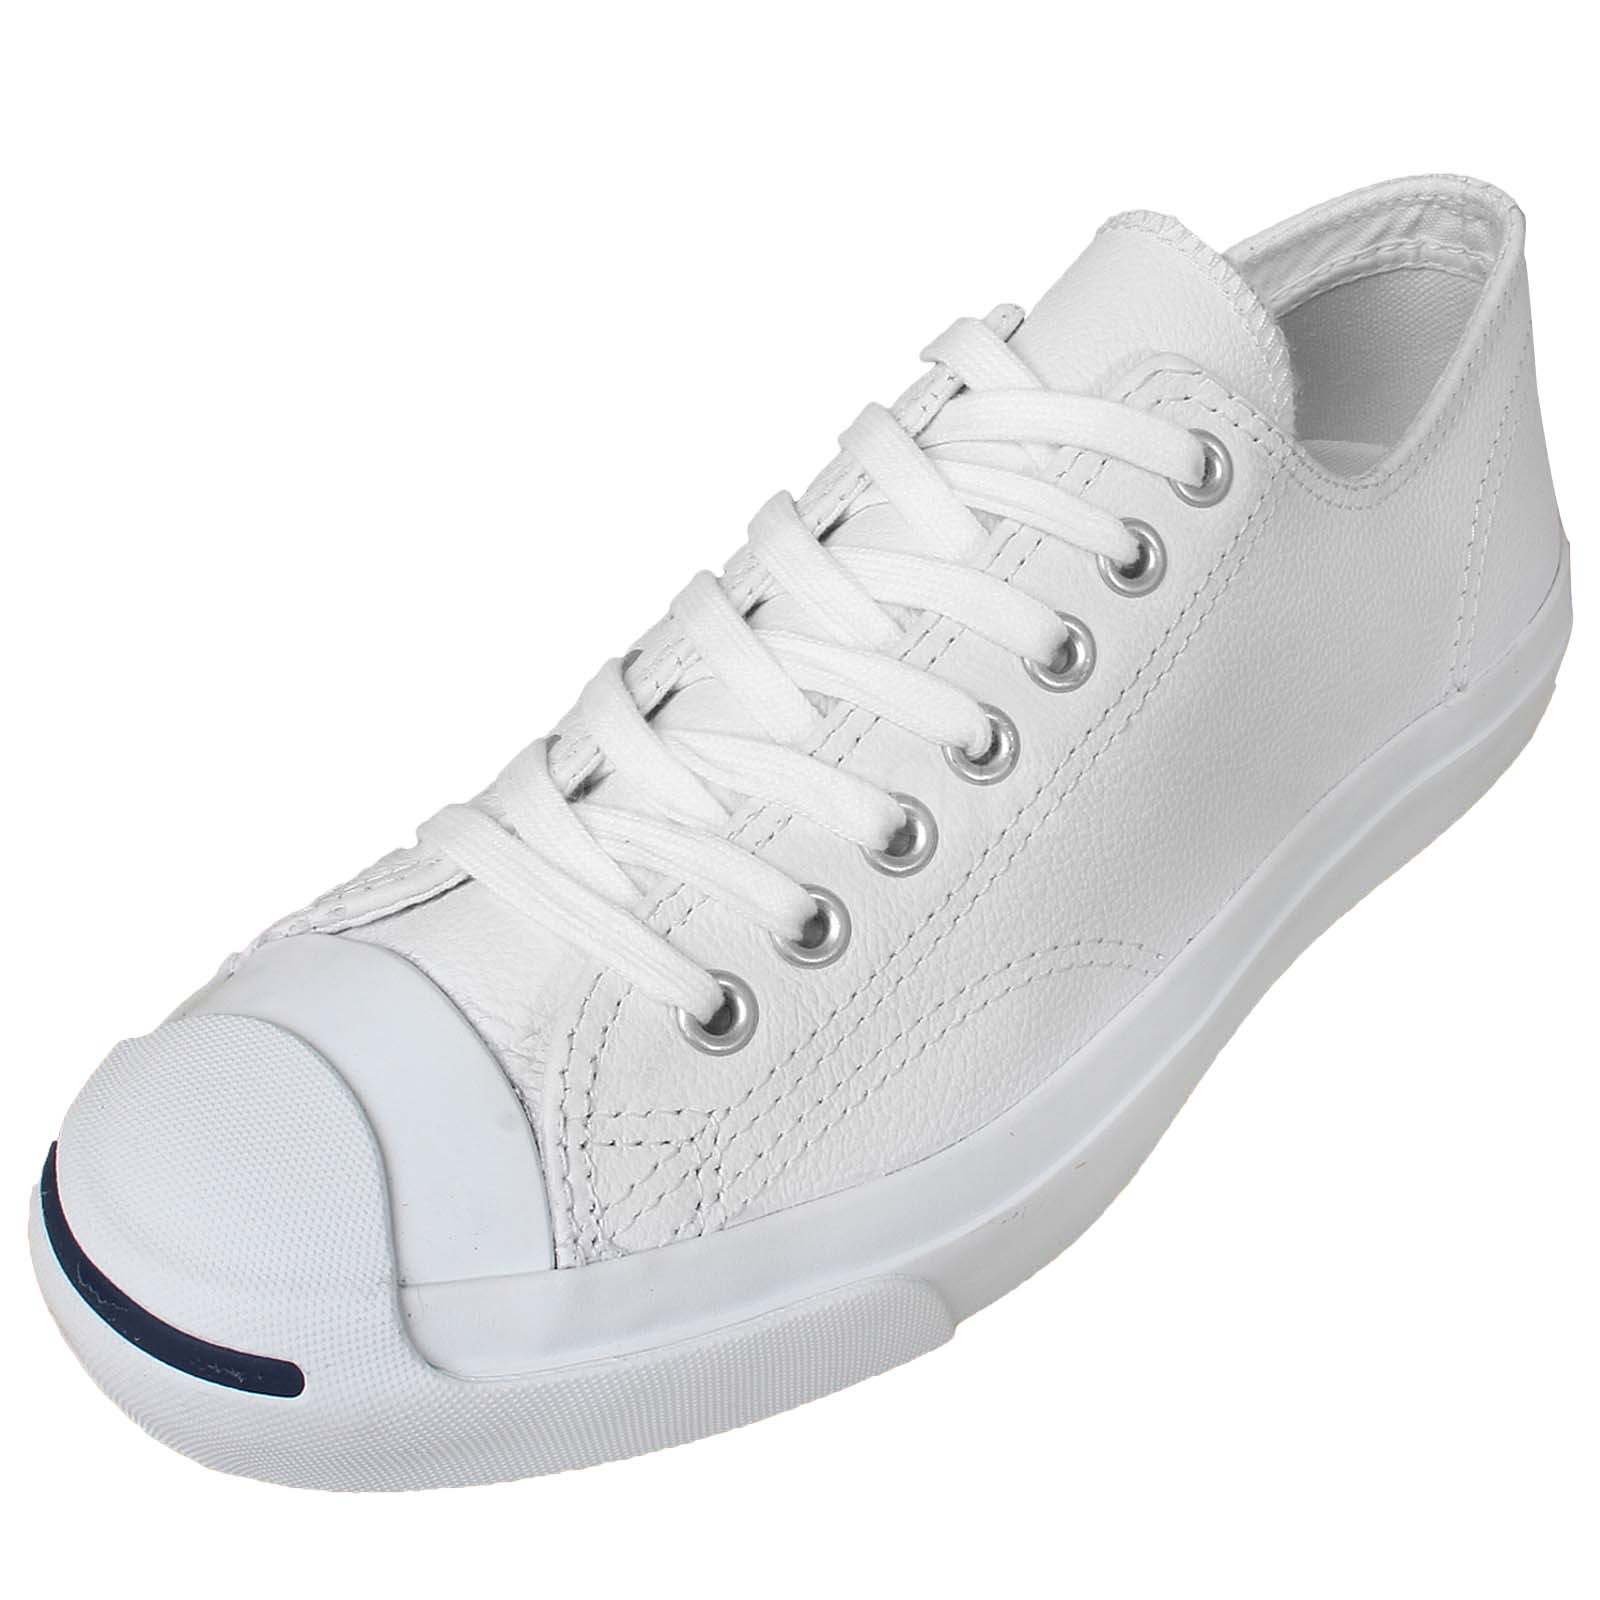 Converse Jack Purcell Leather White Men Women Classic Shoes Sneakers ... 5dc205ac7d57